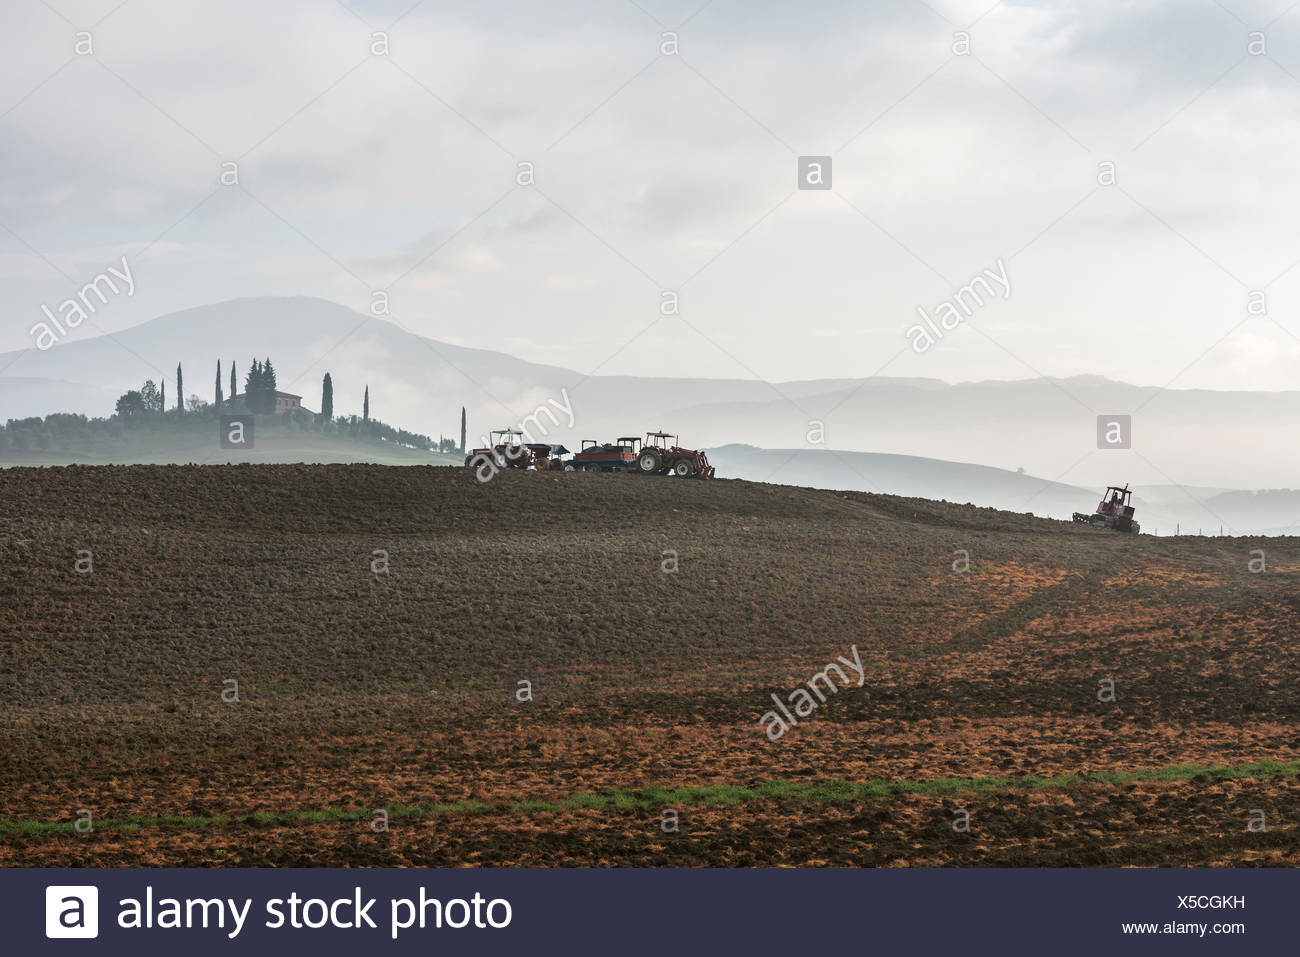 Italy, Tuscany, Castiglione D'orcia, Tractors on gray plowed land and distant cypress trees around villa disappearing in fog - Stock Image